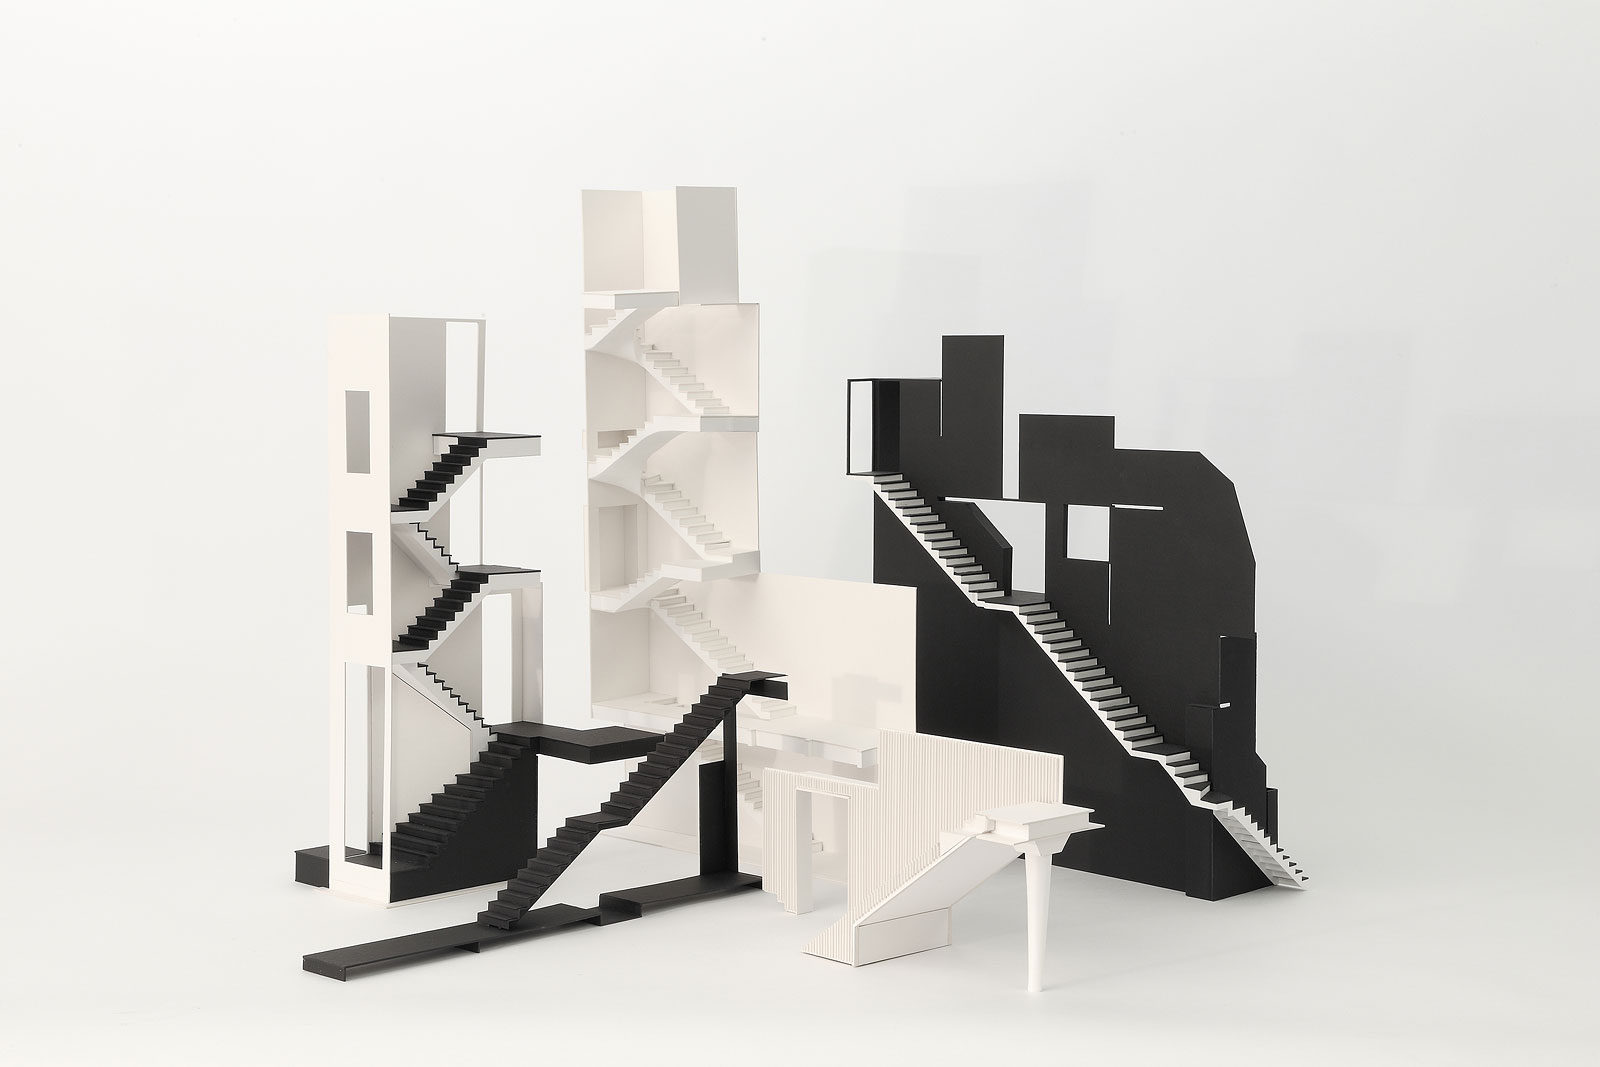 Staircase models